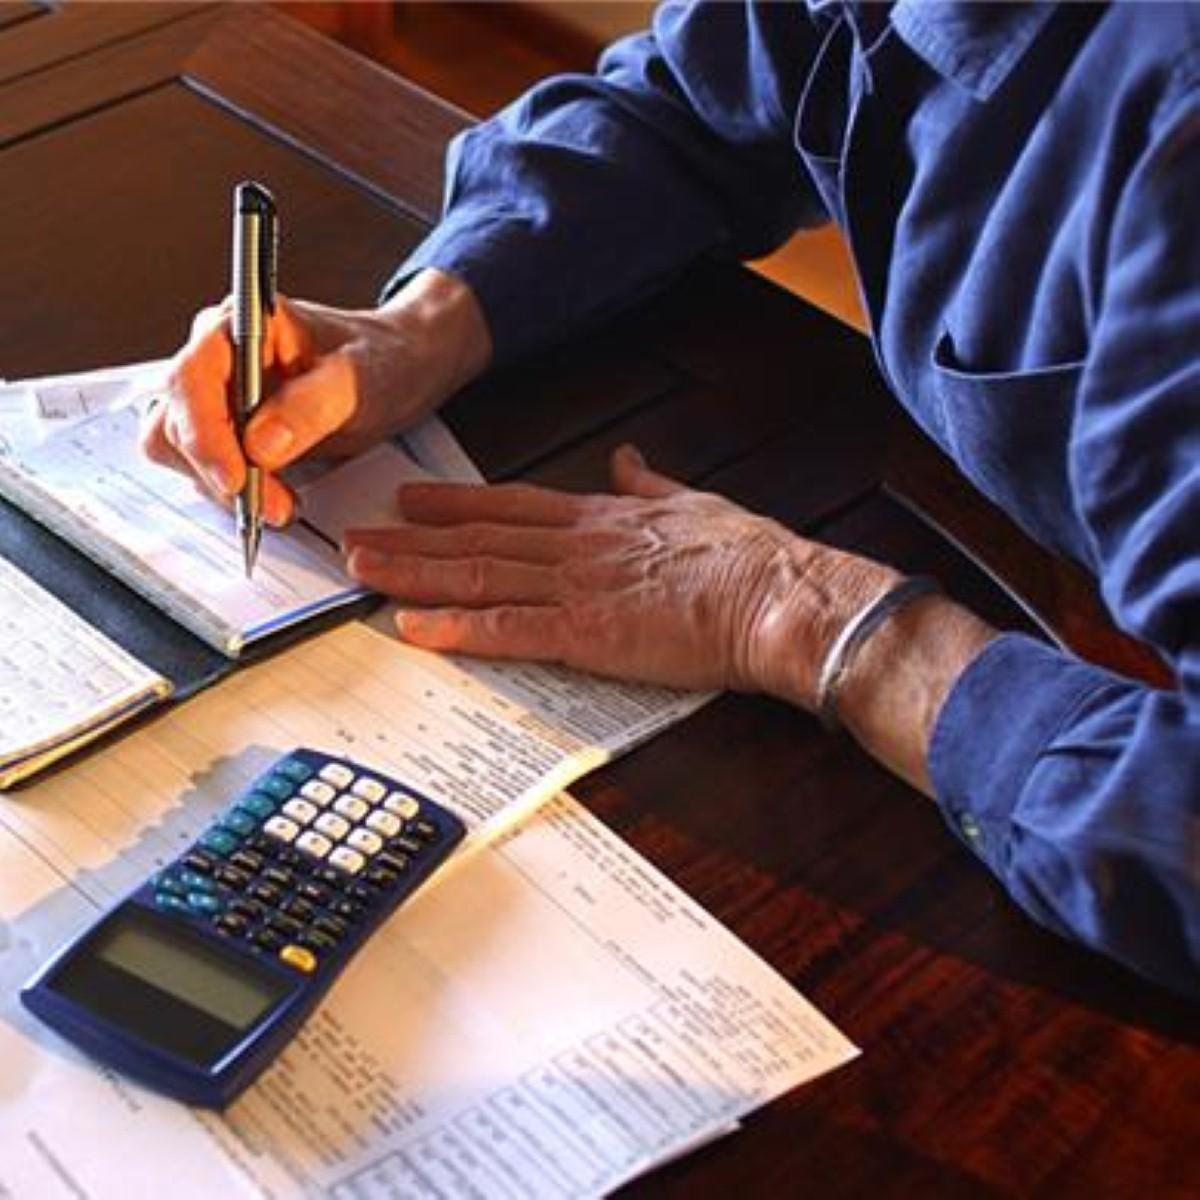 Cheques 'must still be accessible' for Britain's over-65s